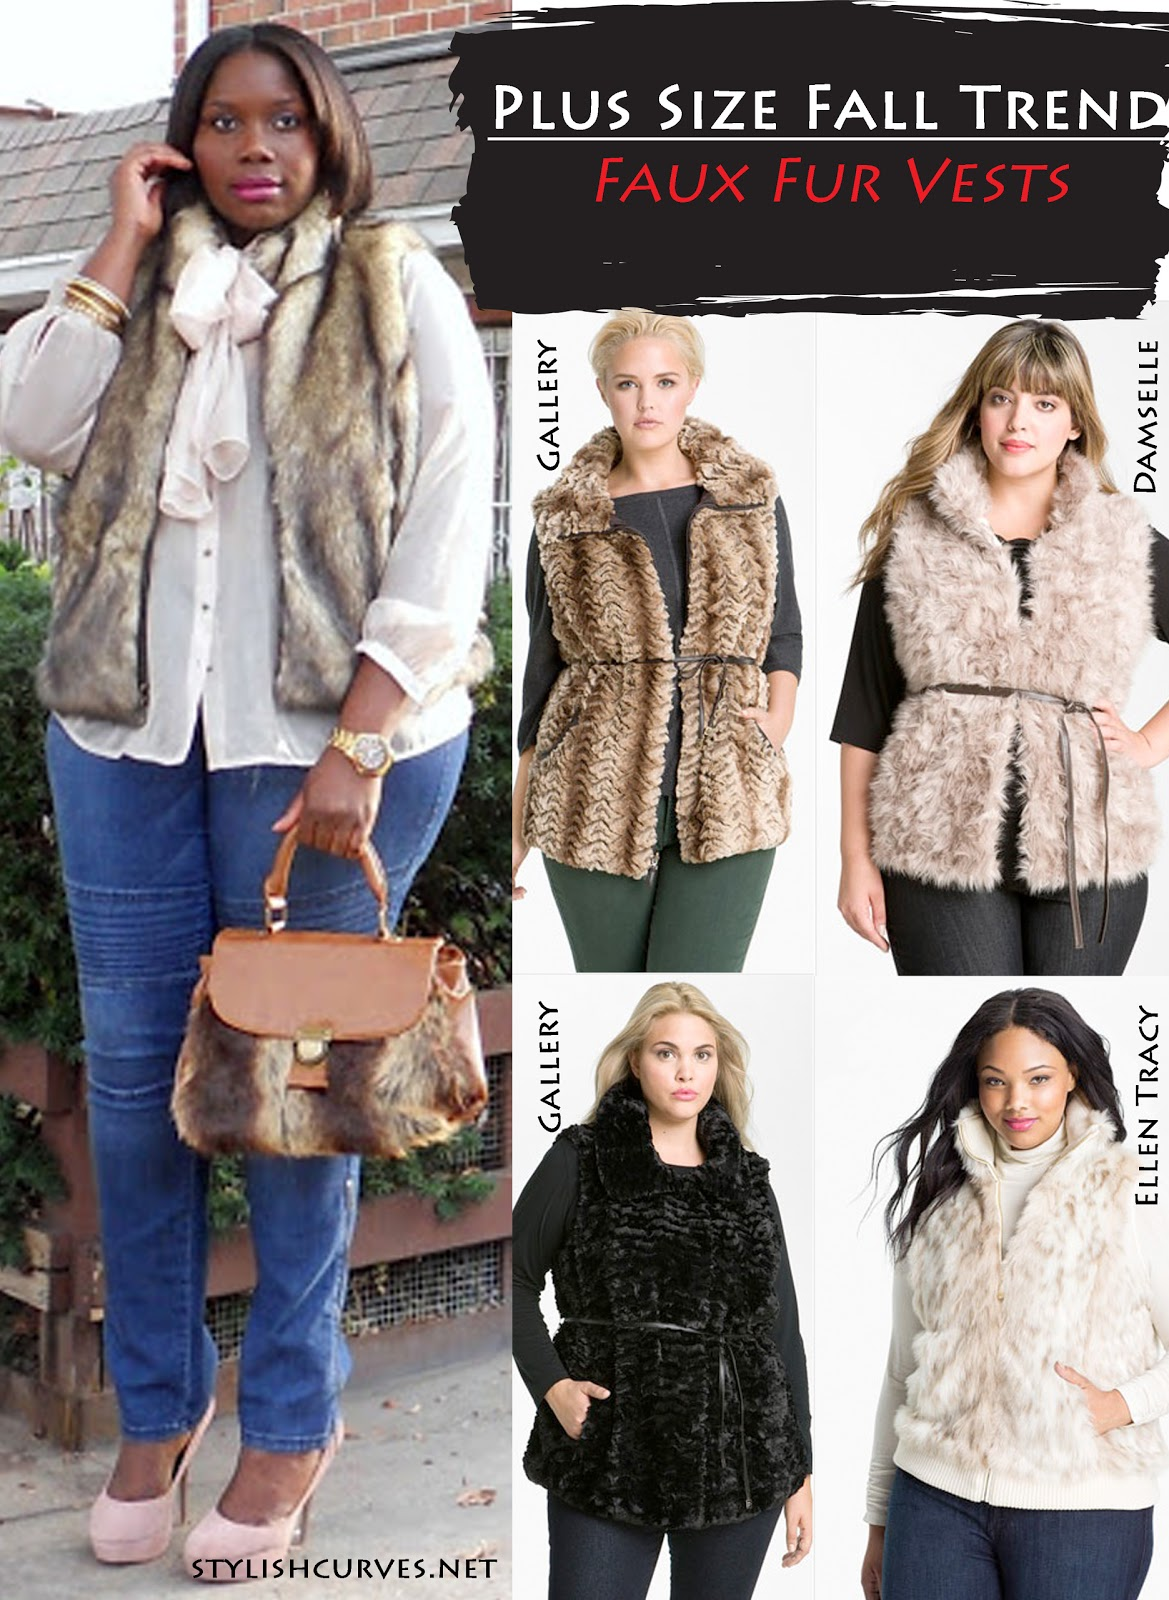 fall trend: plus size faux fur vests | stylish curves